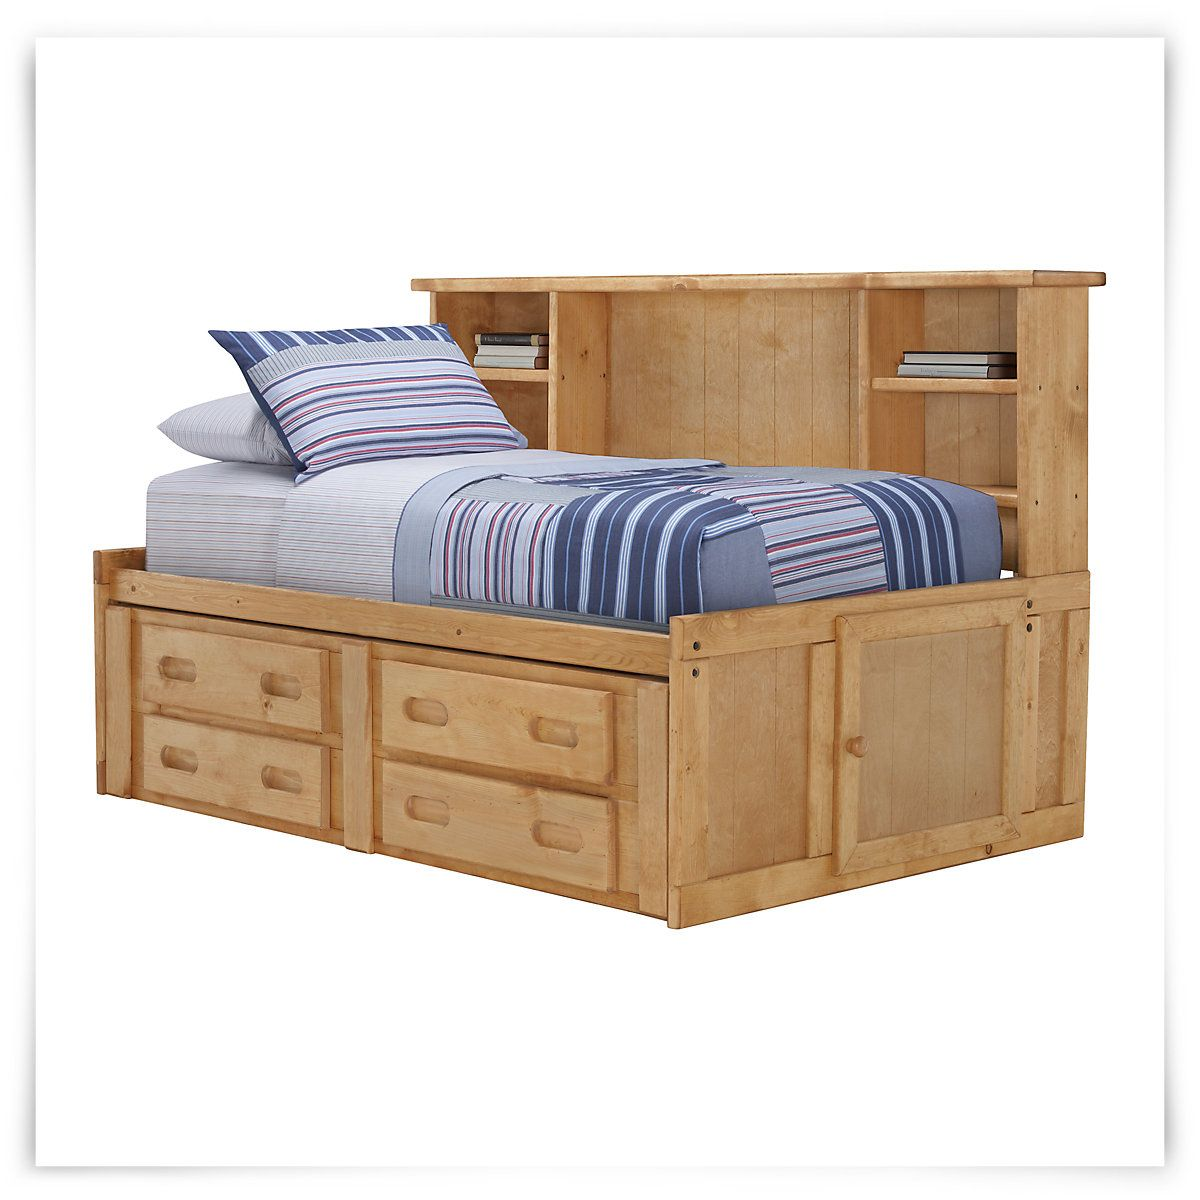 Cinnamon Mid Tone Wood Storage Bookcase Daybed Ideas For That Room